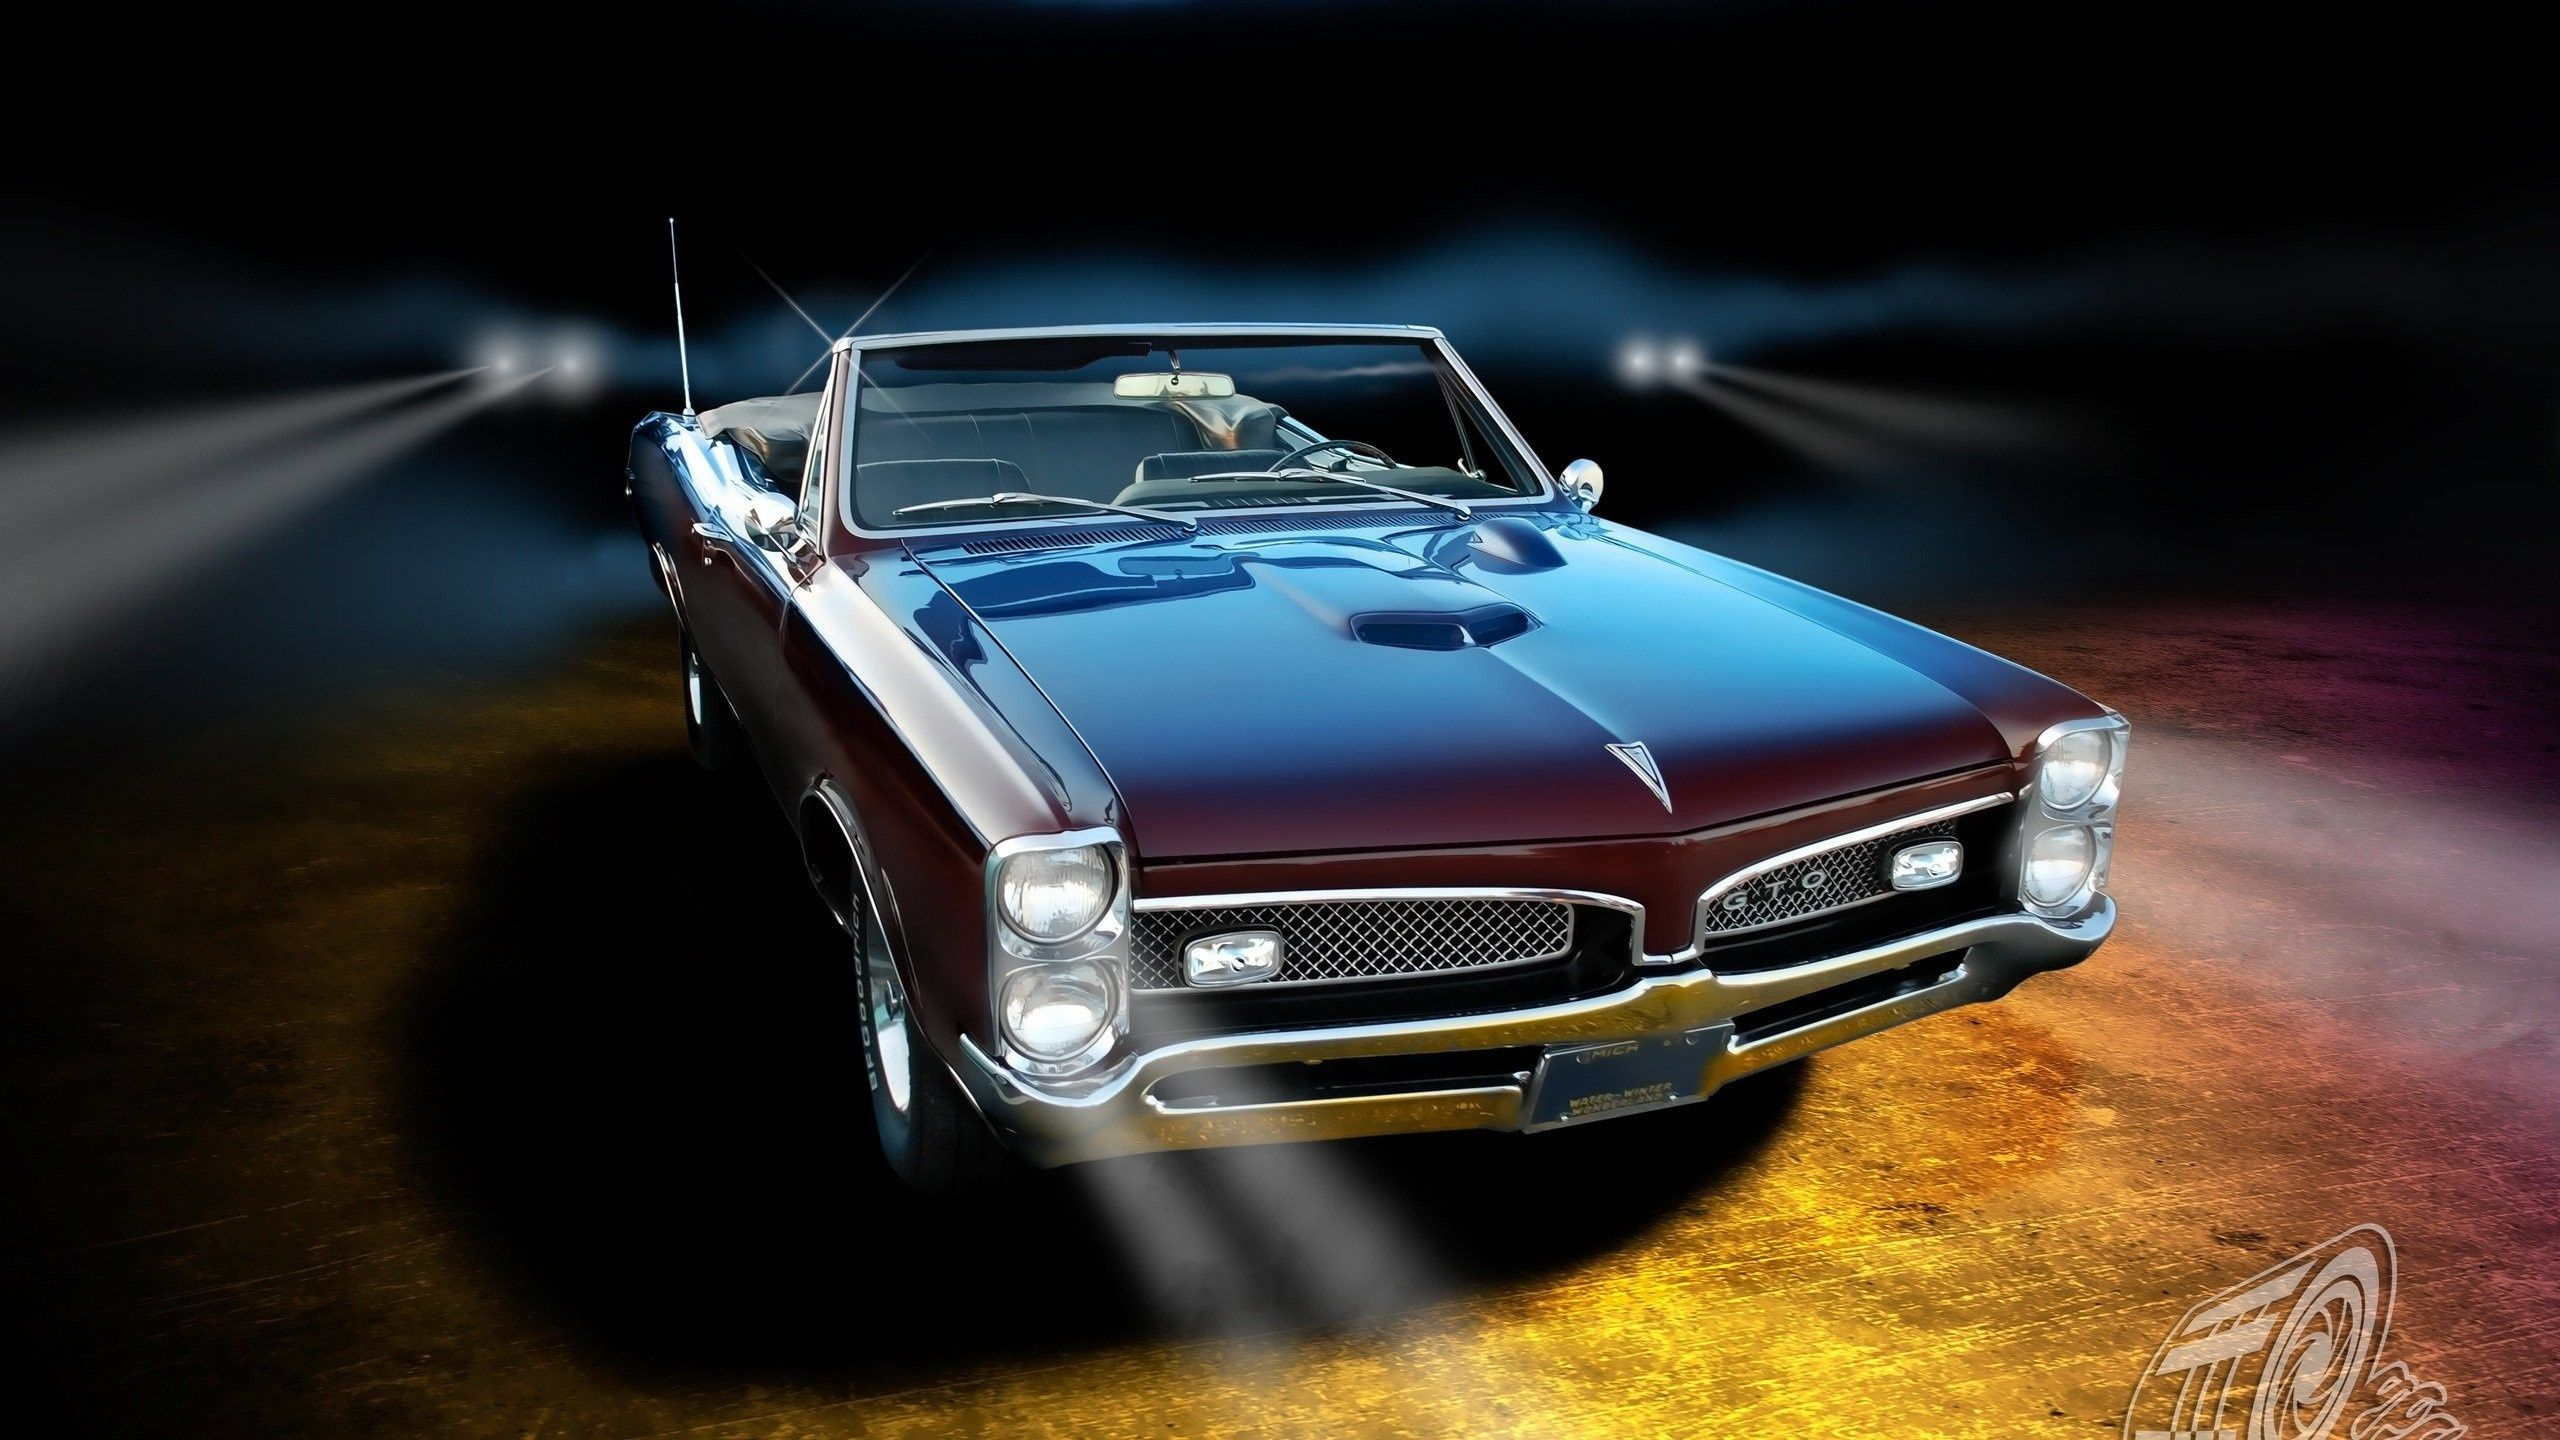 Old Cars Wallpaper HD. Old Cars Wallpaper HD   Cars   Pinterest   Car wallpapers and Cars